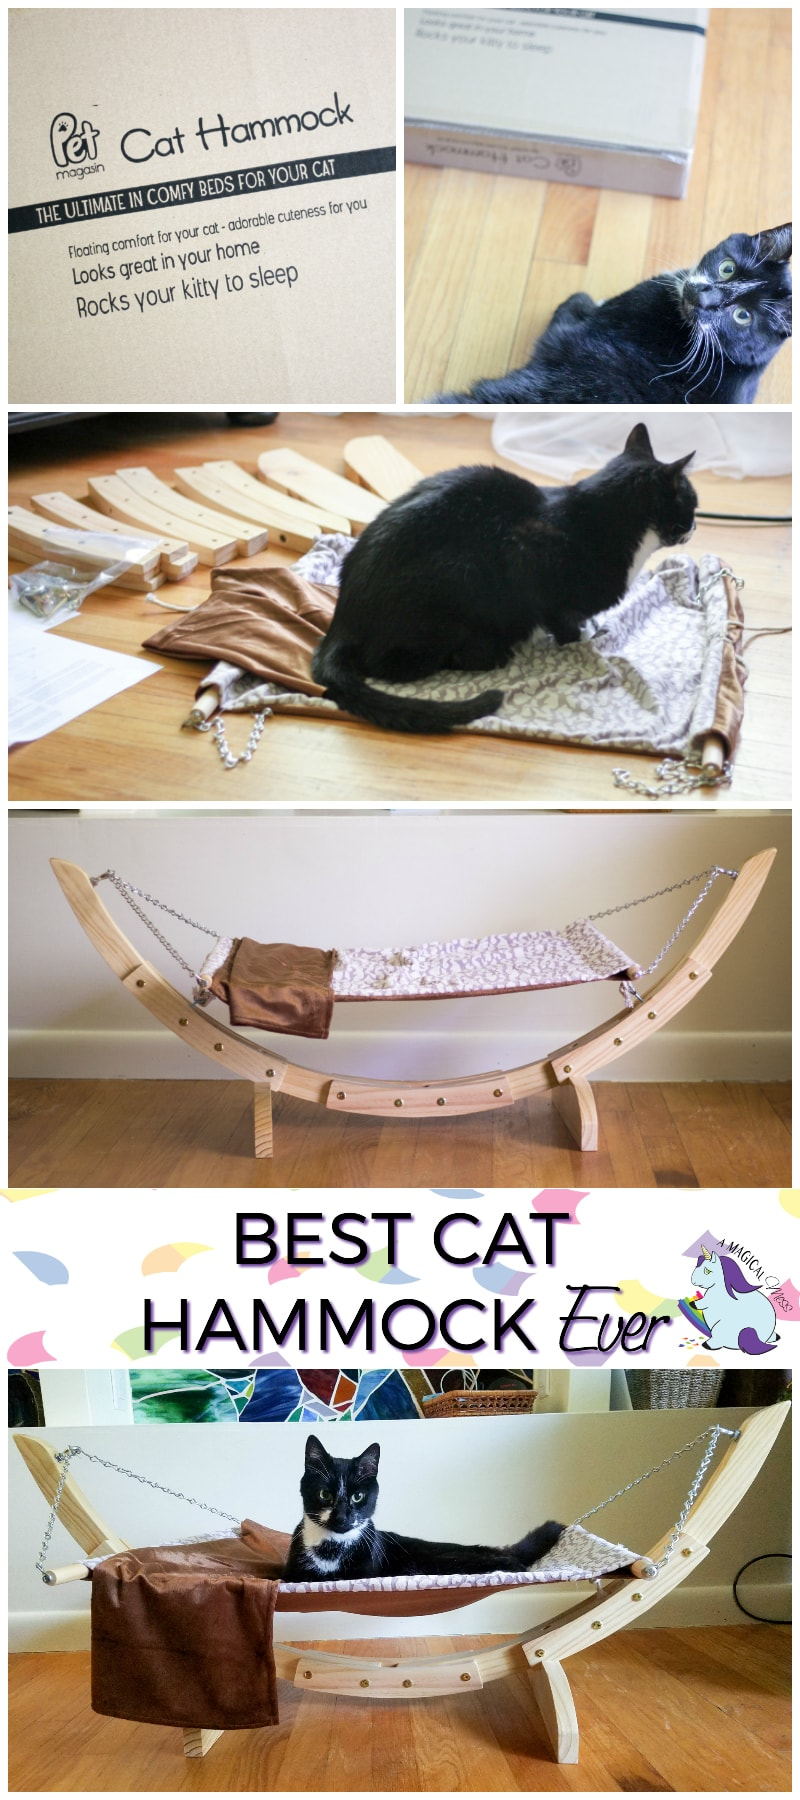 Best Hammock for Cats and How to Get Your Cat to Love It